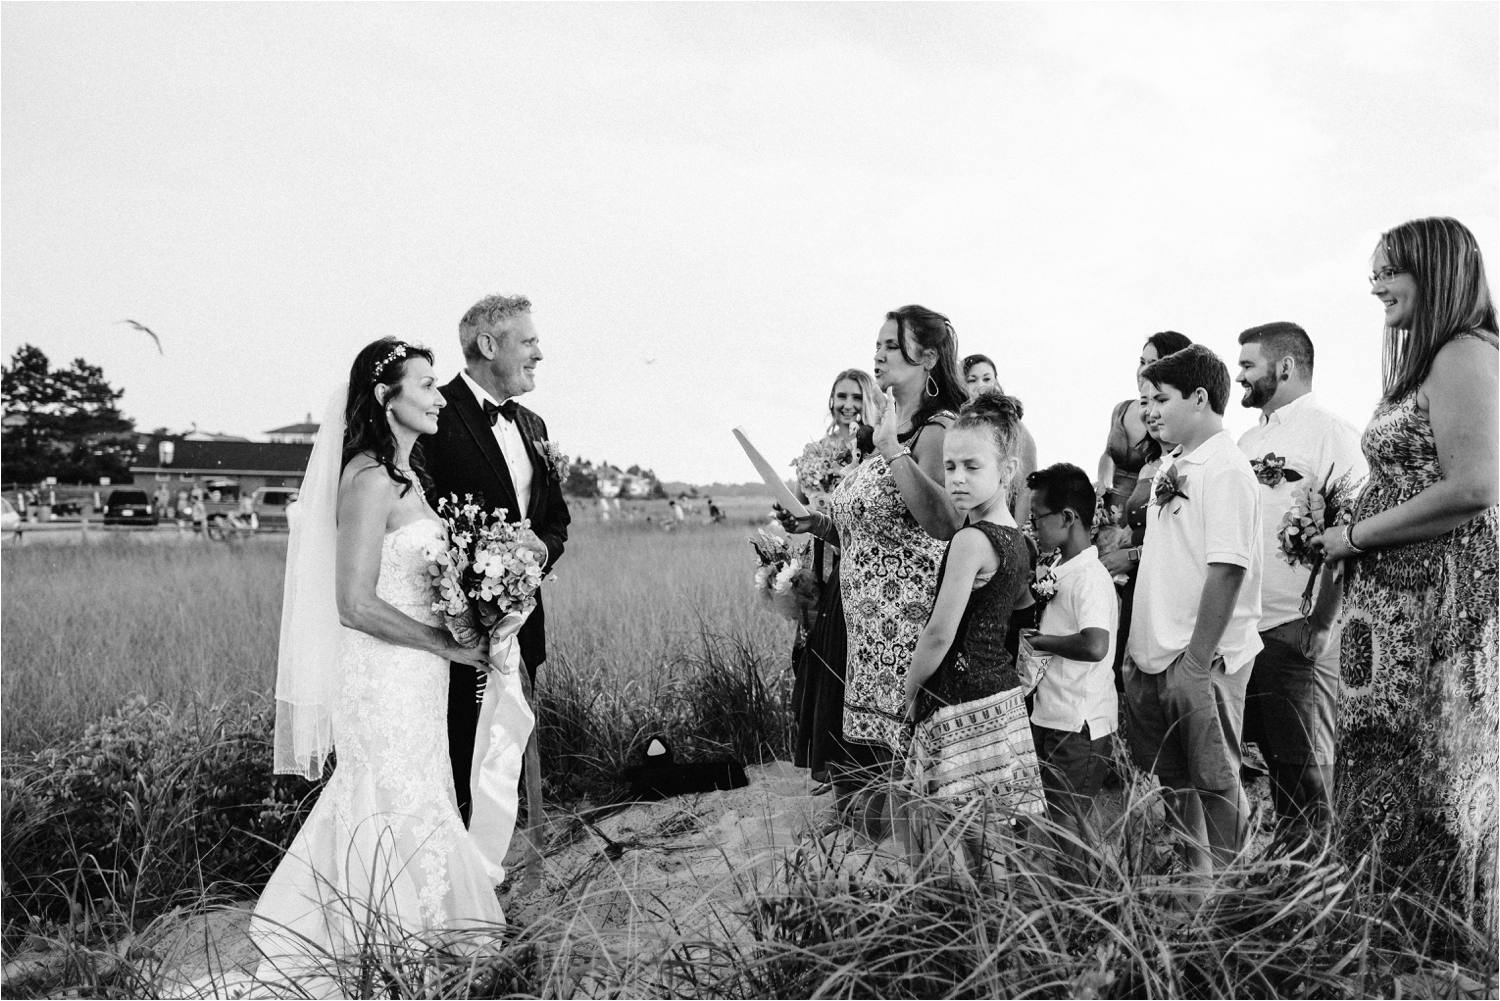 Intimate Pine Point Maine Beach Elopement During a Summer Storm - Jemima Richards